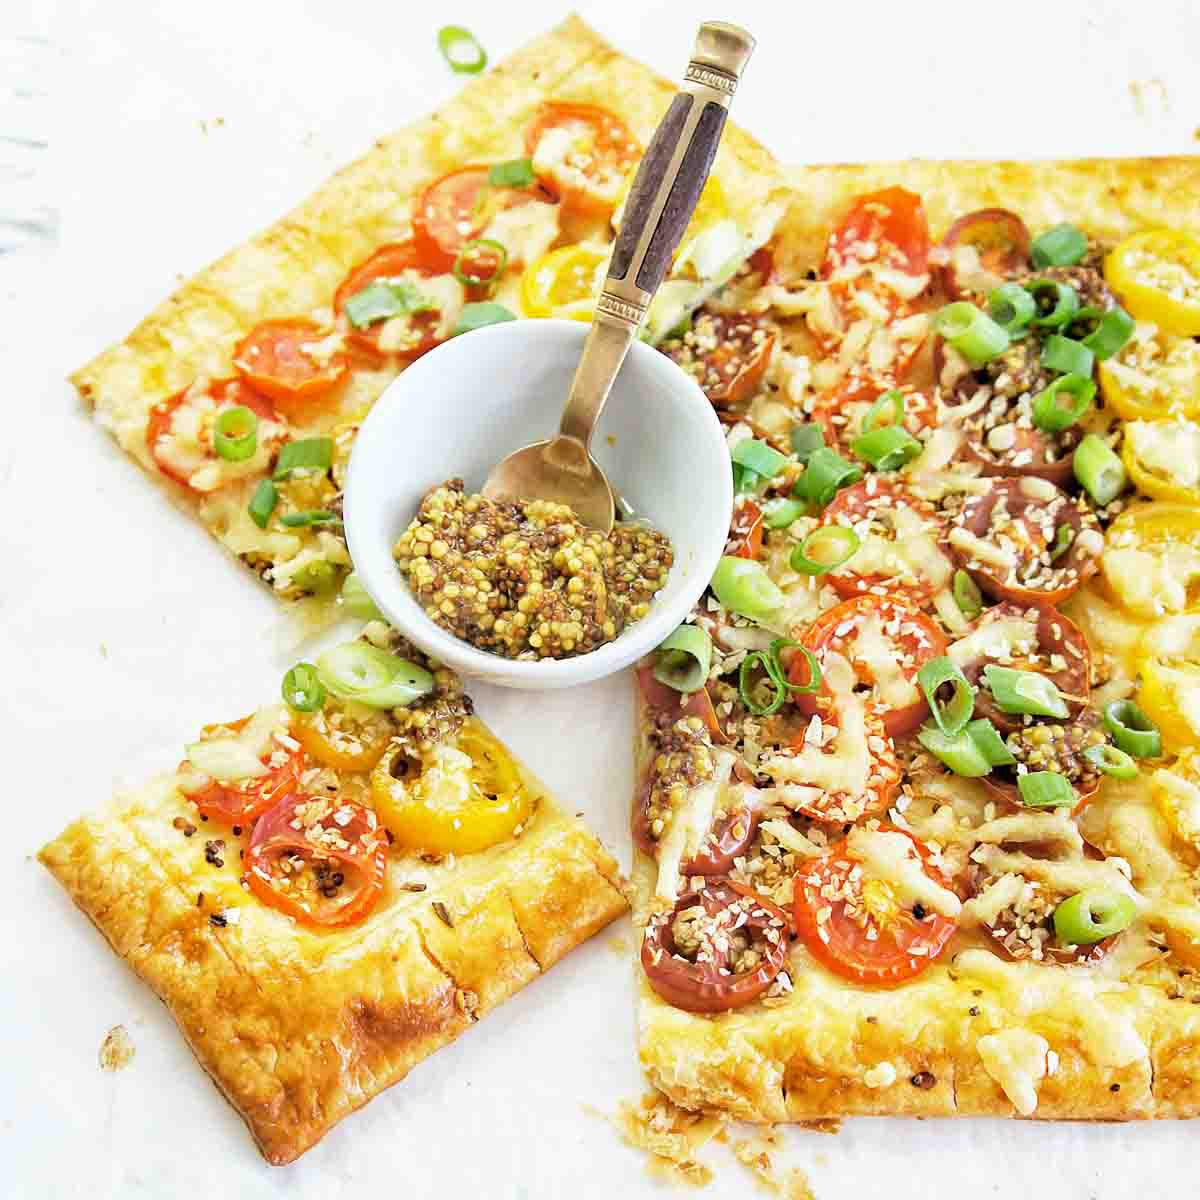 Tomato Tart with a small bowl of mustard that has a spoon in it on a white background